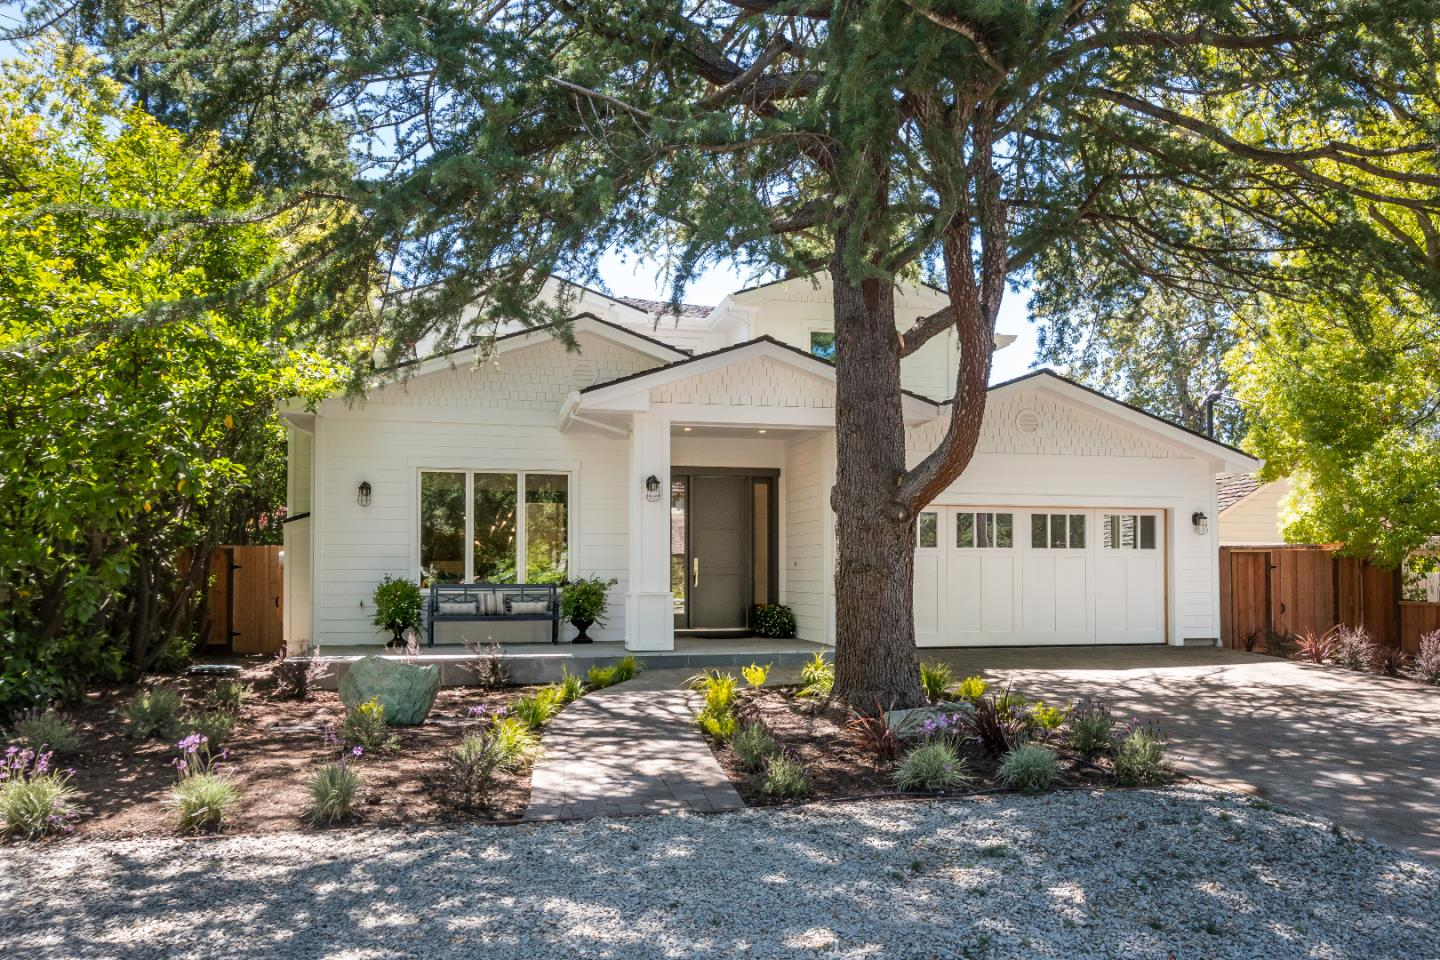 Single Family Home for Sale at 455 San Mateo Drive Menlo Park, California 94025 United States